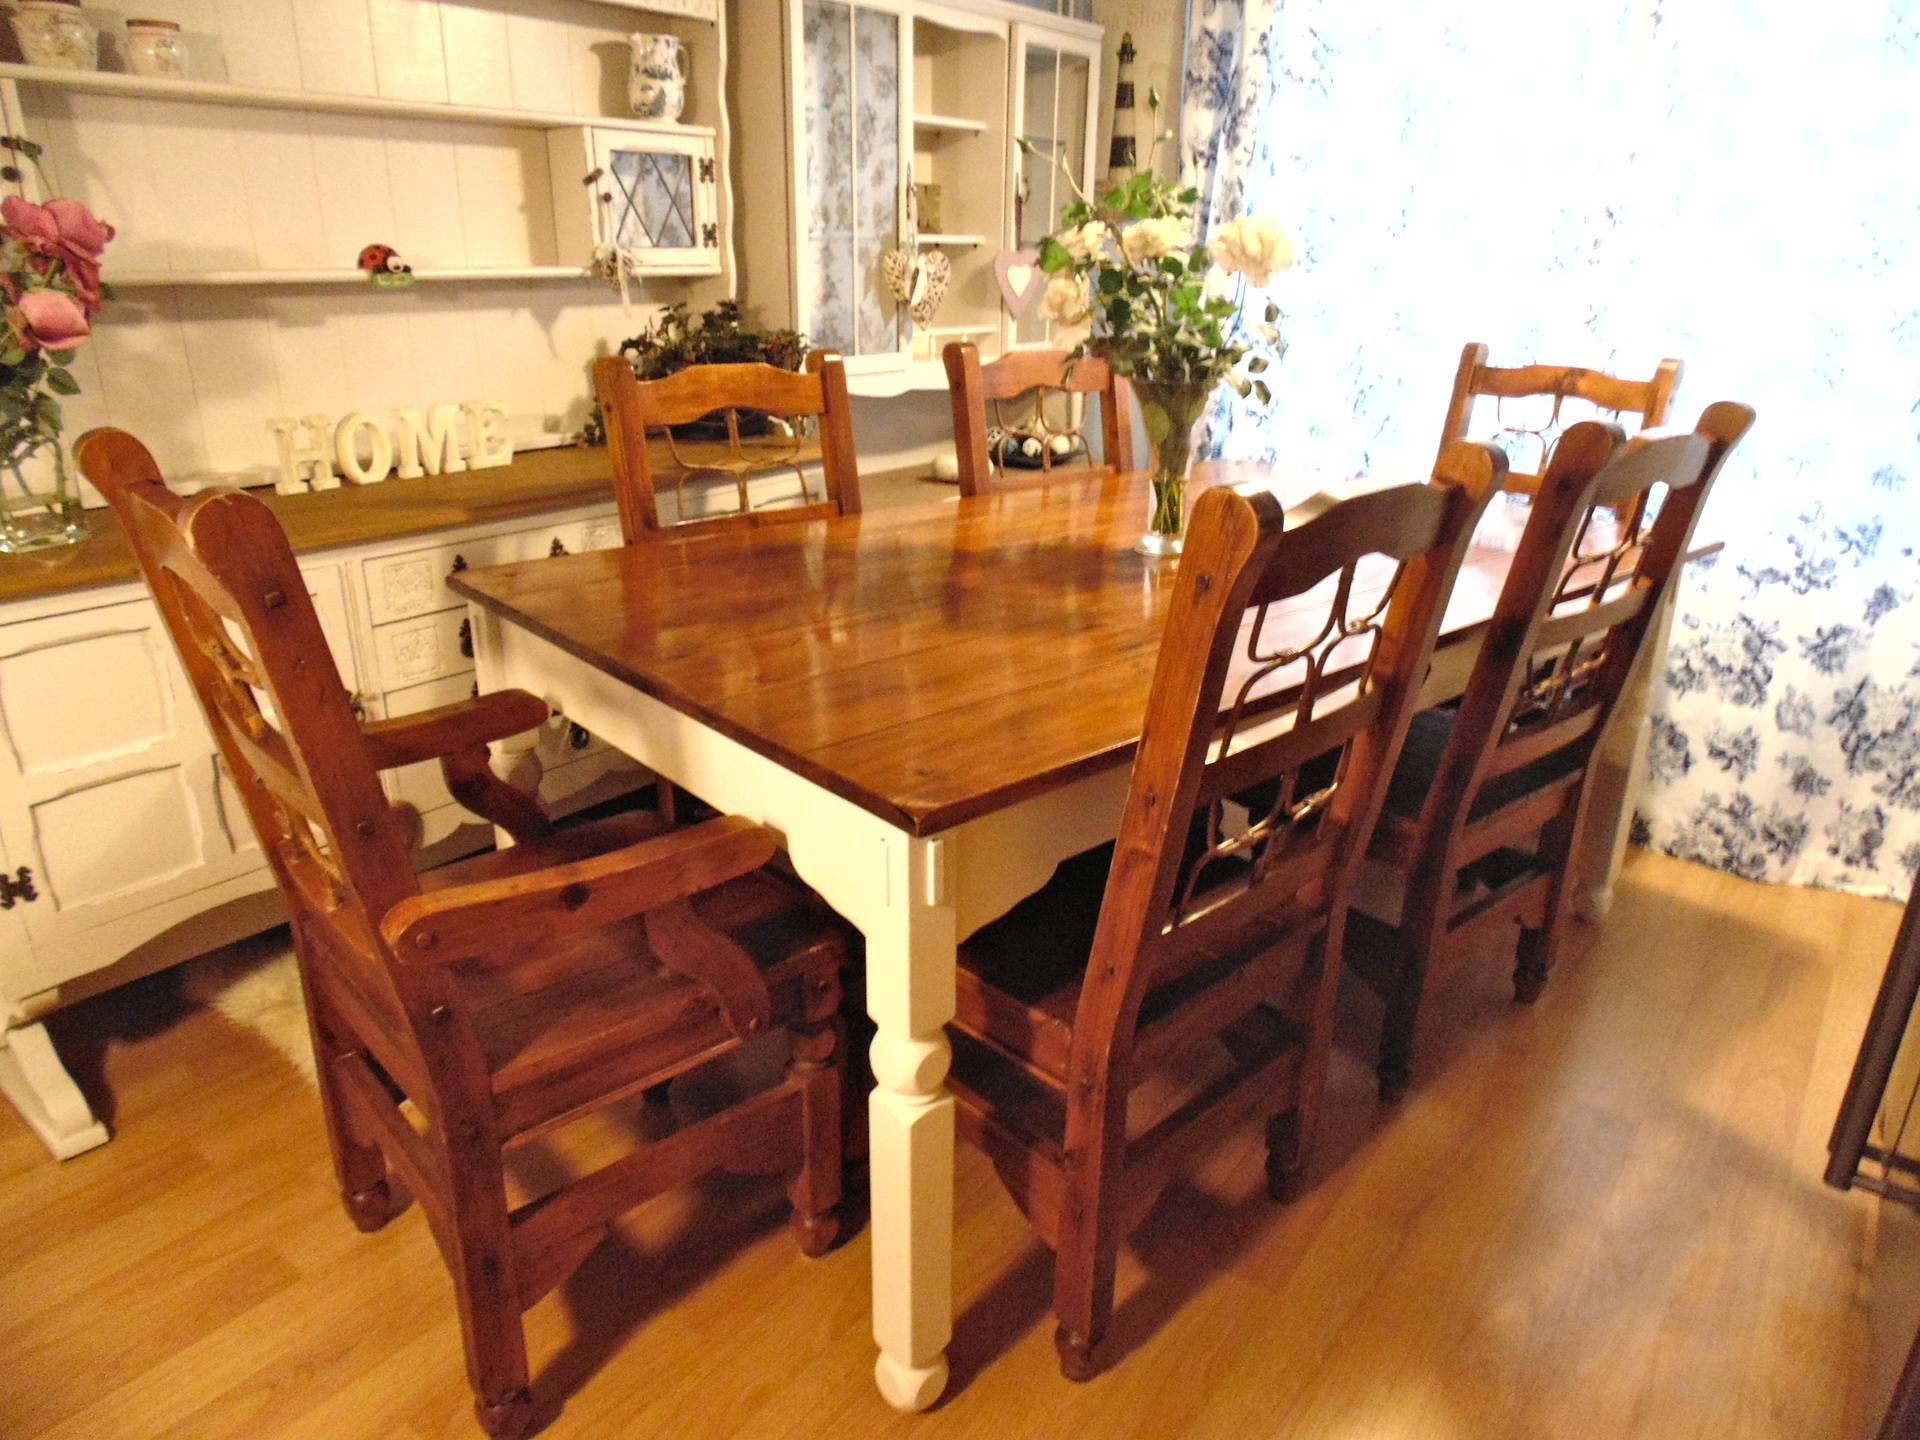 Rustic Solid Wood Large Table & 6 Chairs, Painted in F & B Clunch